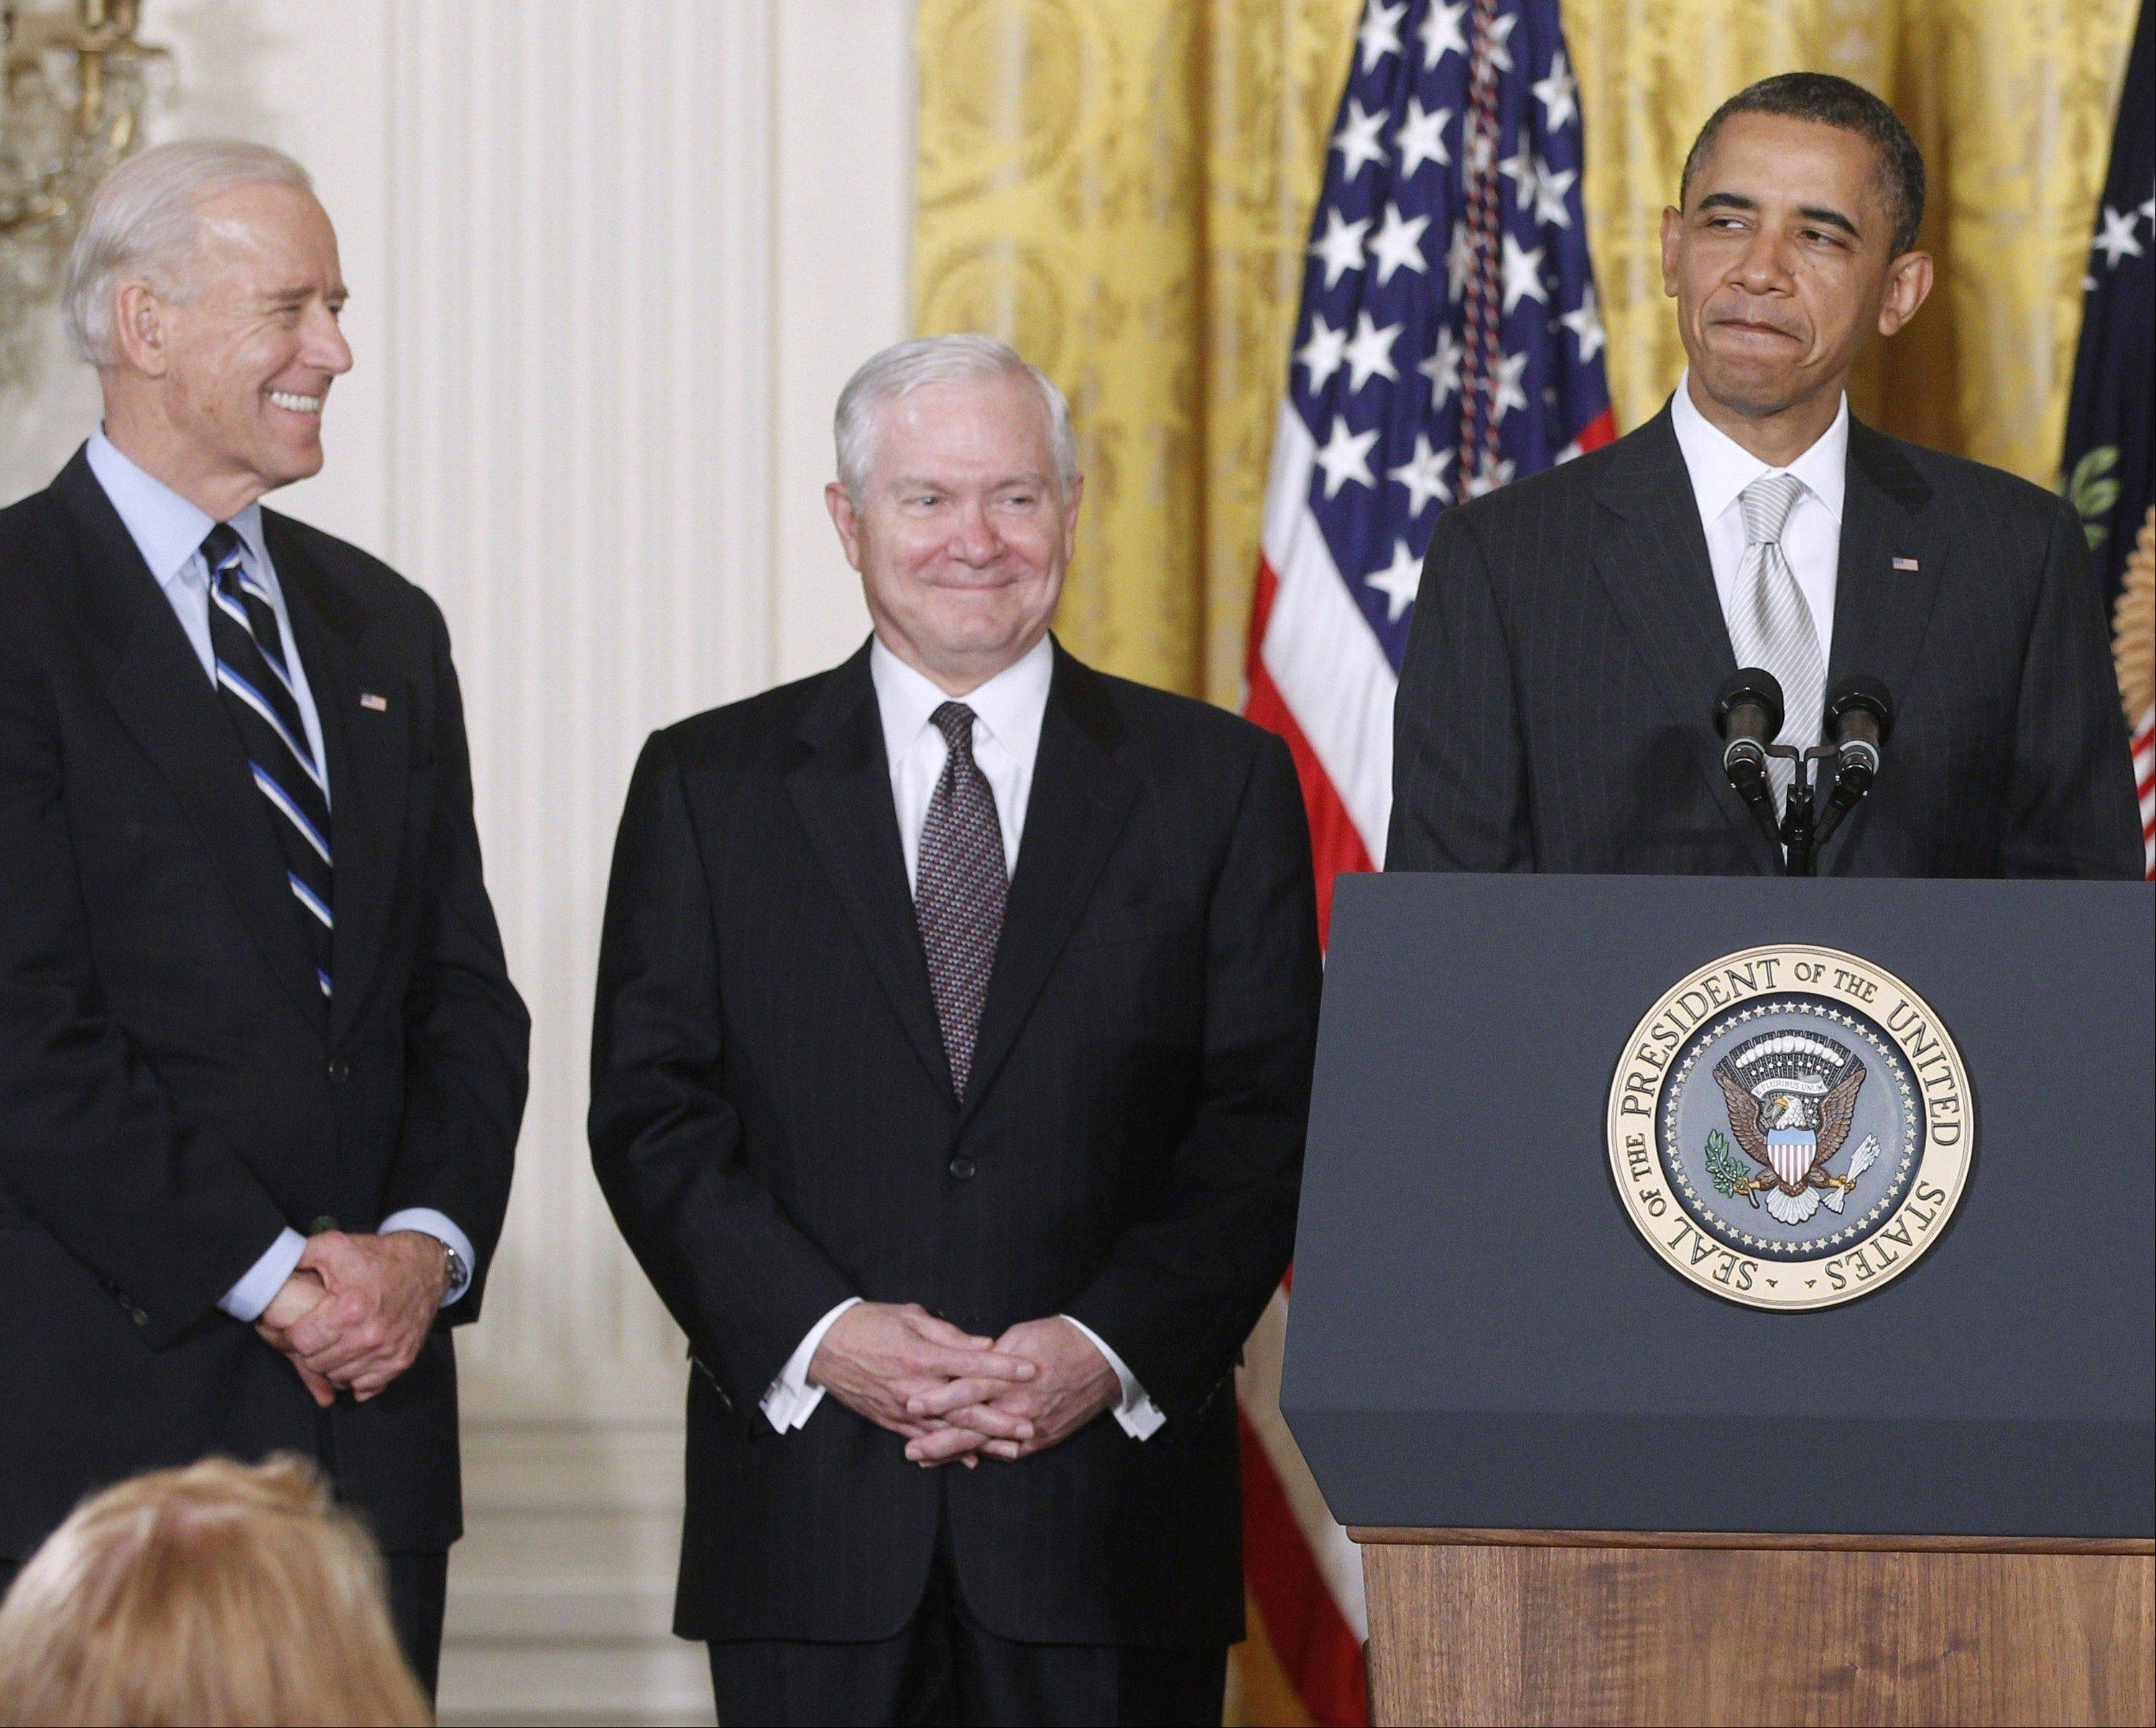 President Barack Obama stands in the East Room of the White House in Washington with, from left: Vice President Joe Biden and outgoing Defense Secretary Robert Gates. The White House is bristling over former Defense Secretary Robert Gates� new memoir accusing President Barack Obama of showing too little enthusiasm for the U.S. war mission in Afghanistan and sharply criticizing Vice President Joe Biden�s foreign policy instincts.